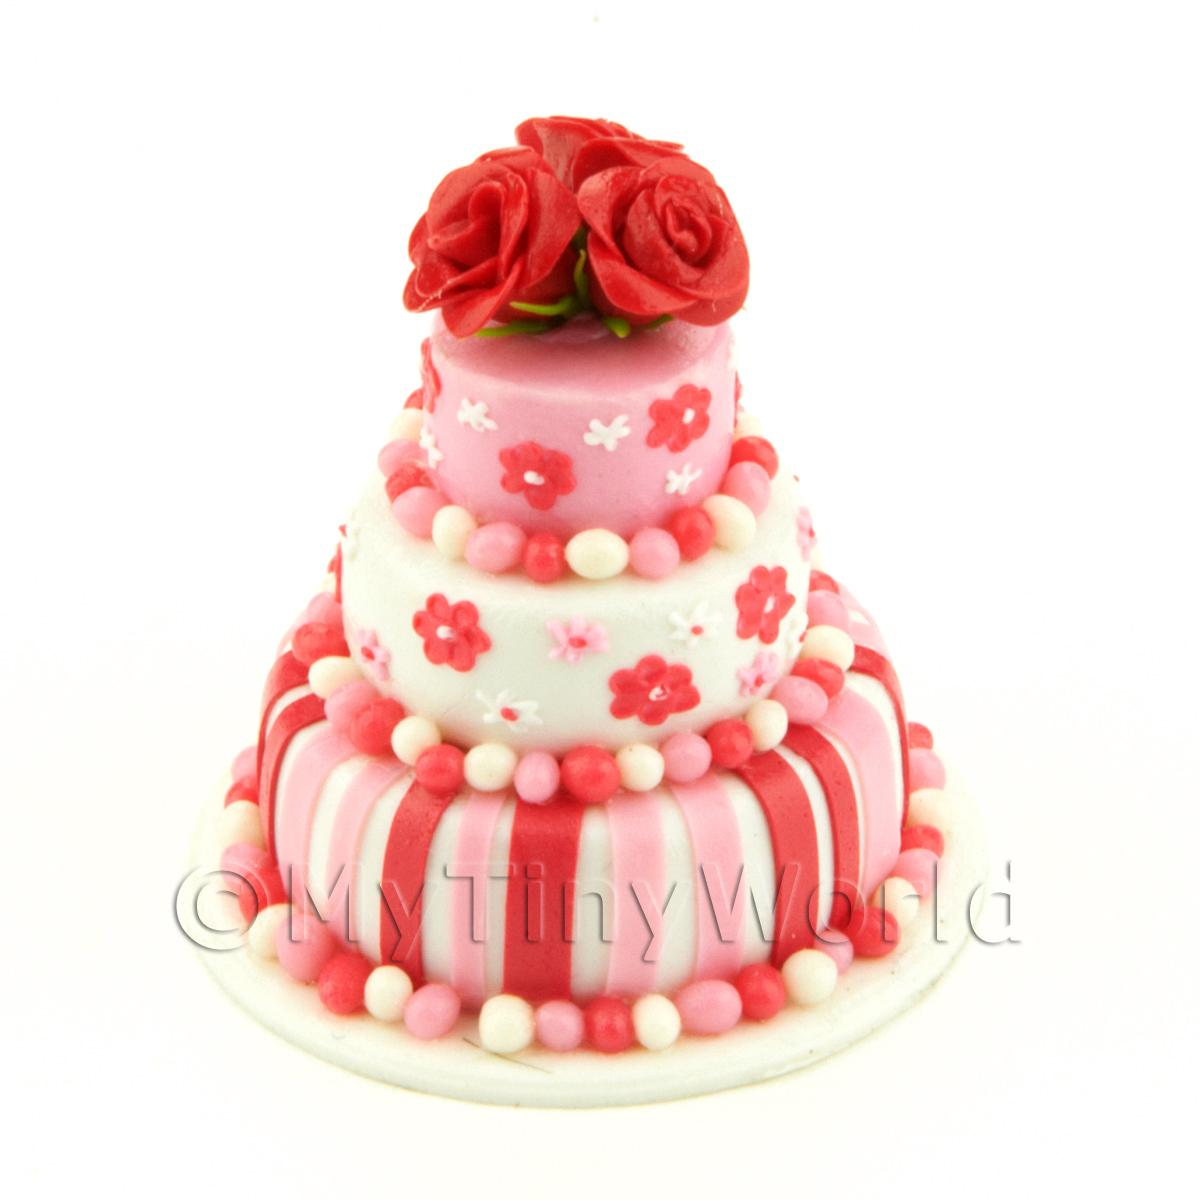 Dolls House Miniature 3 Tier Red / Pink / White Cake With Roses